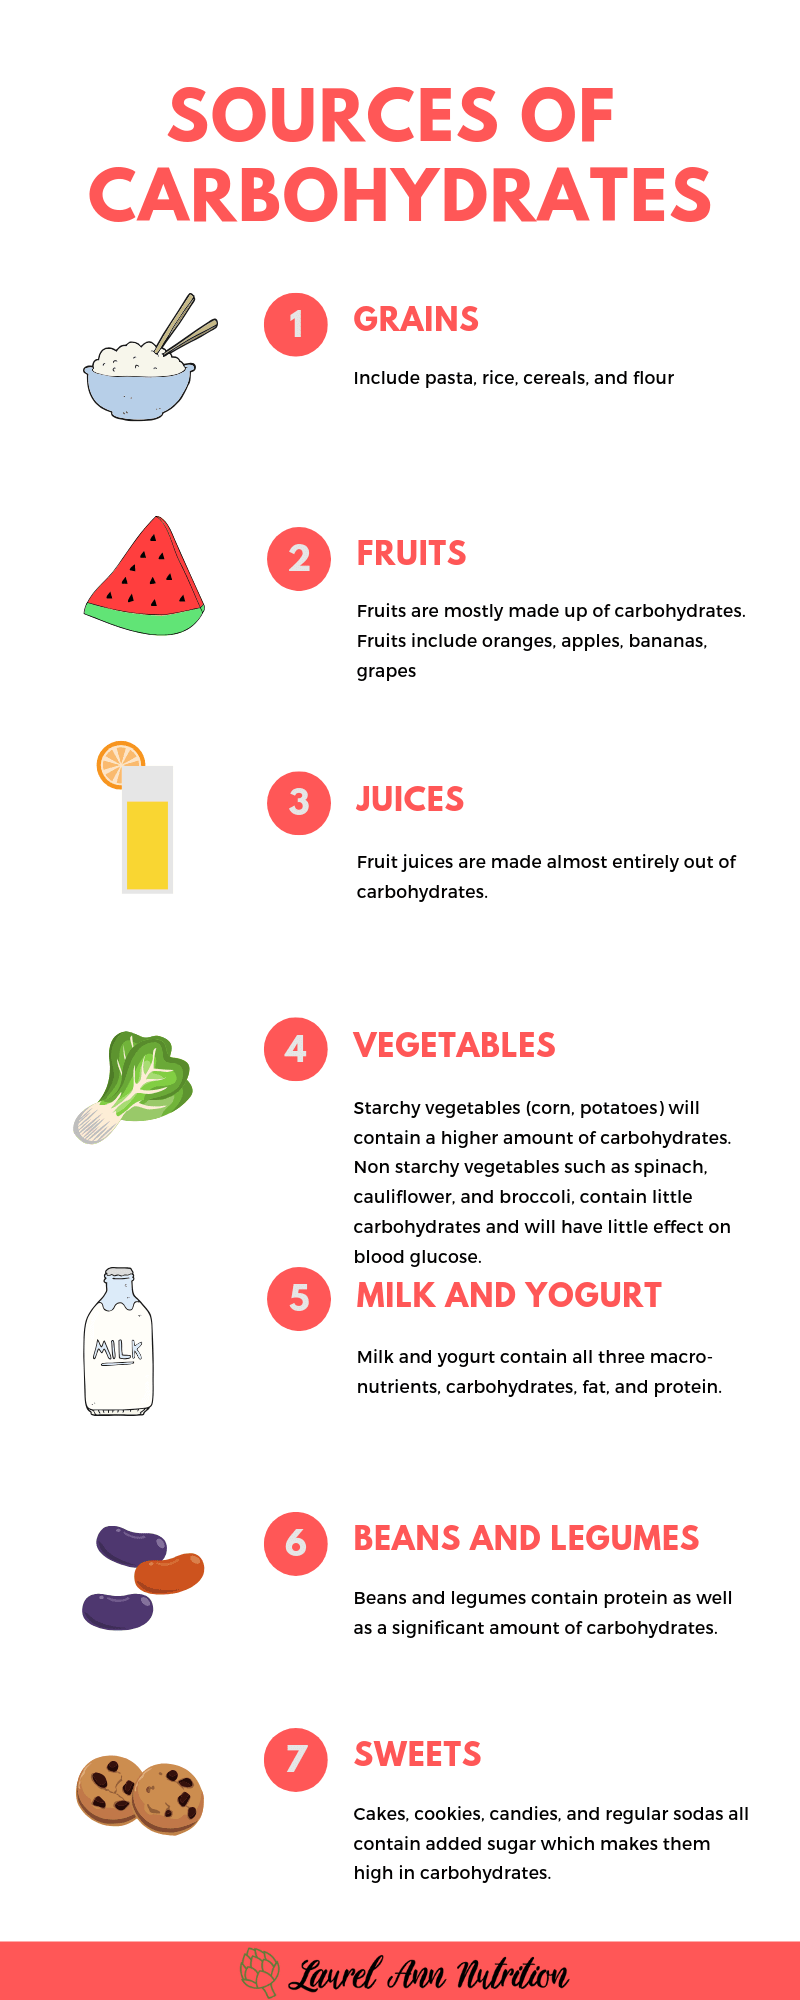 Consistent Carbohydrate Diet Is It Right For Me Laurel Ann Nutrition In 2020 Sources Of Carbohydrates Banana Diet Strawberry Banana Smoothie Healthy